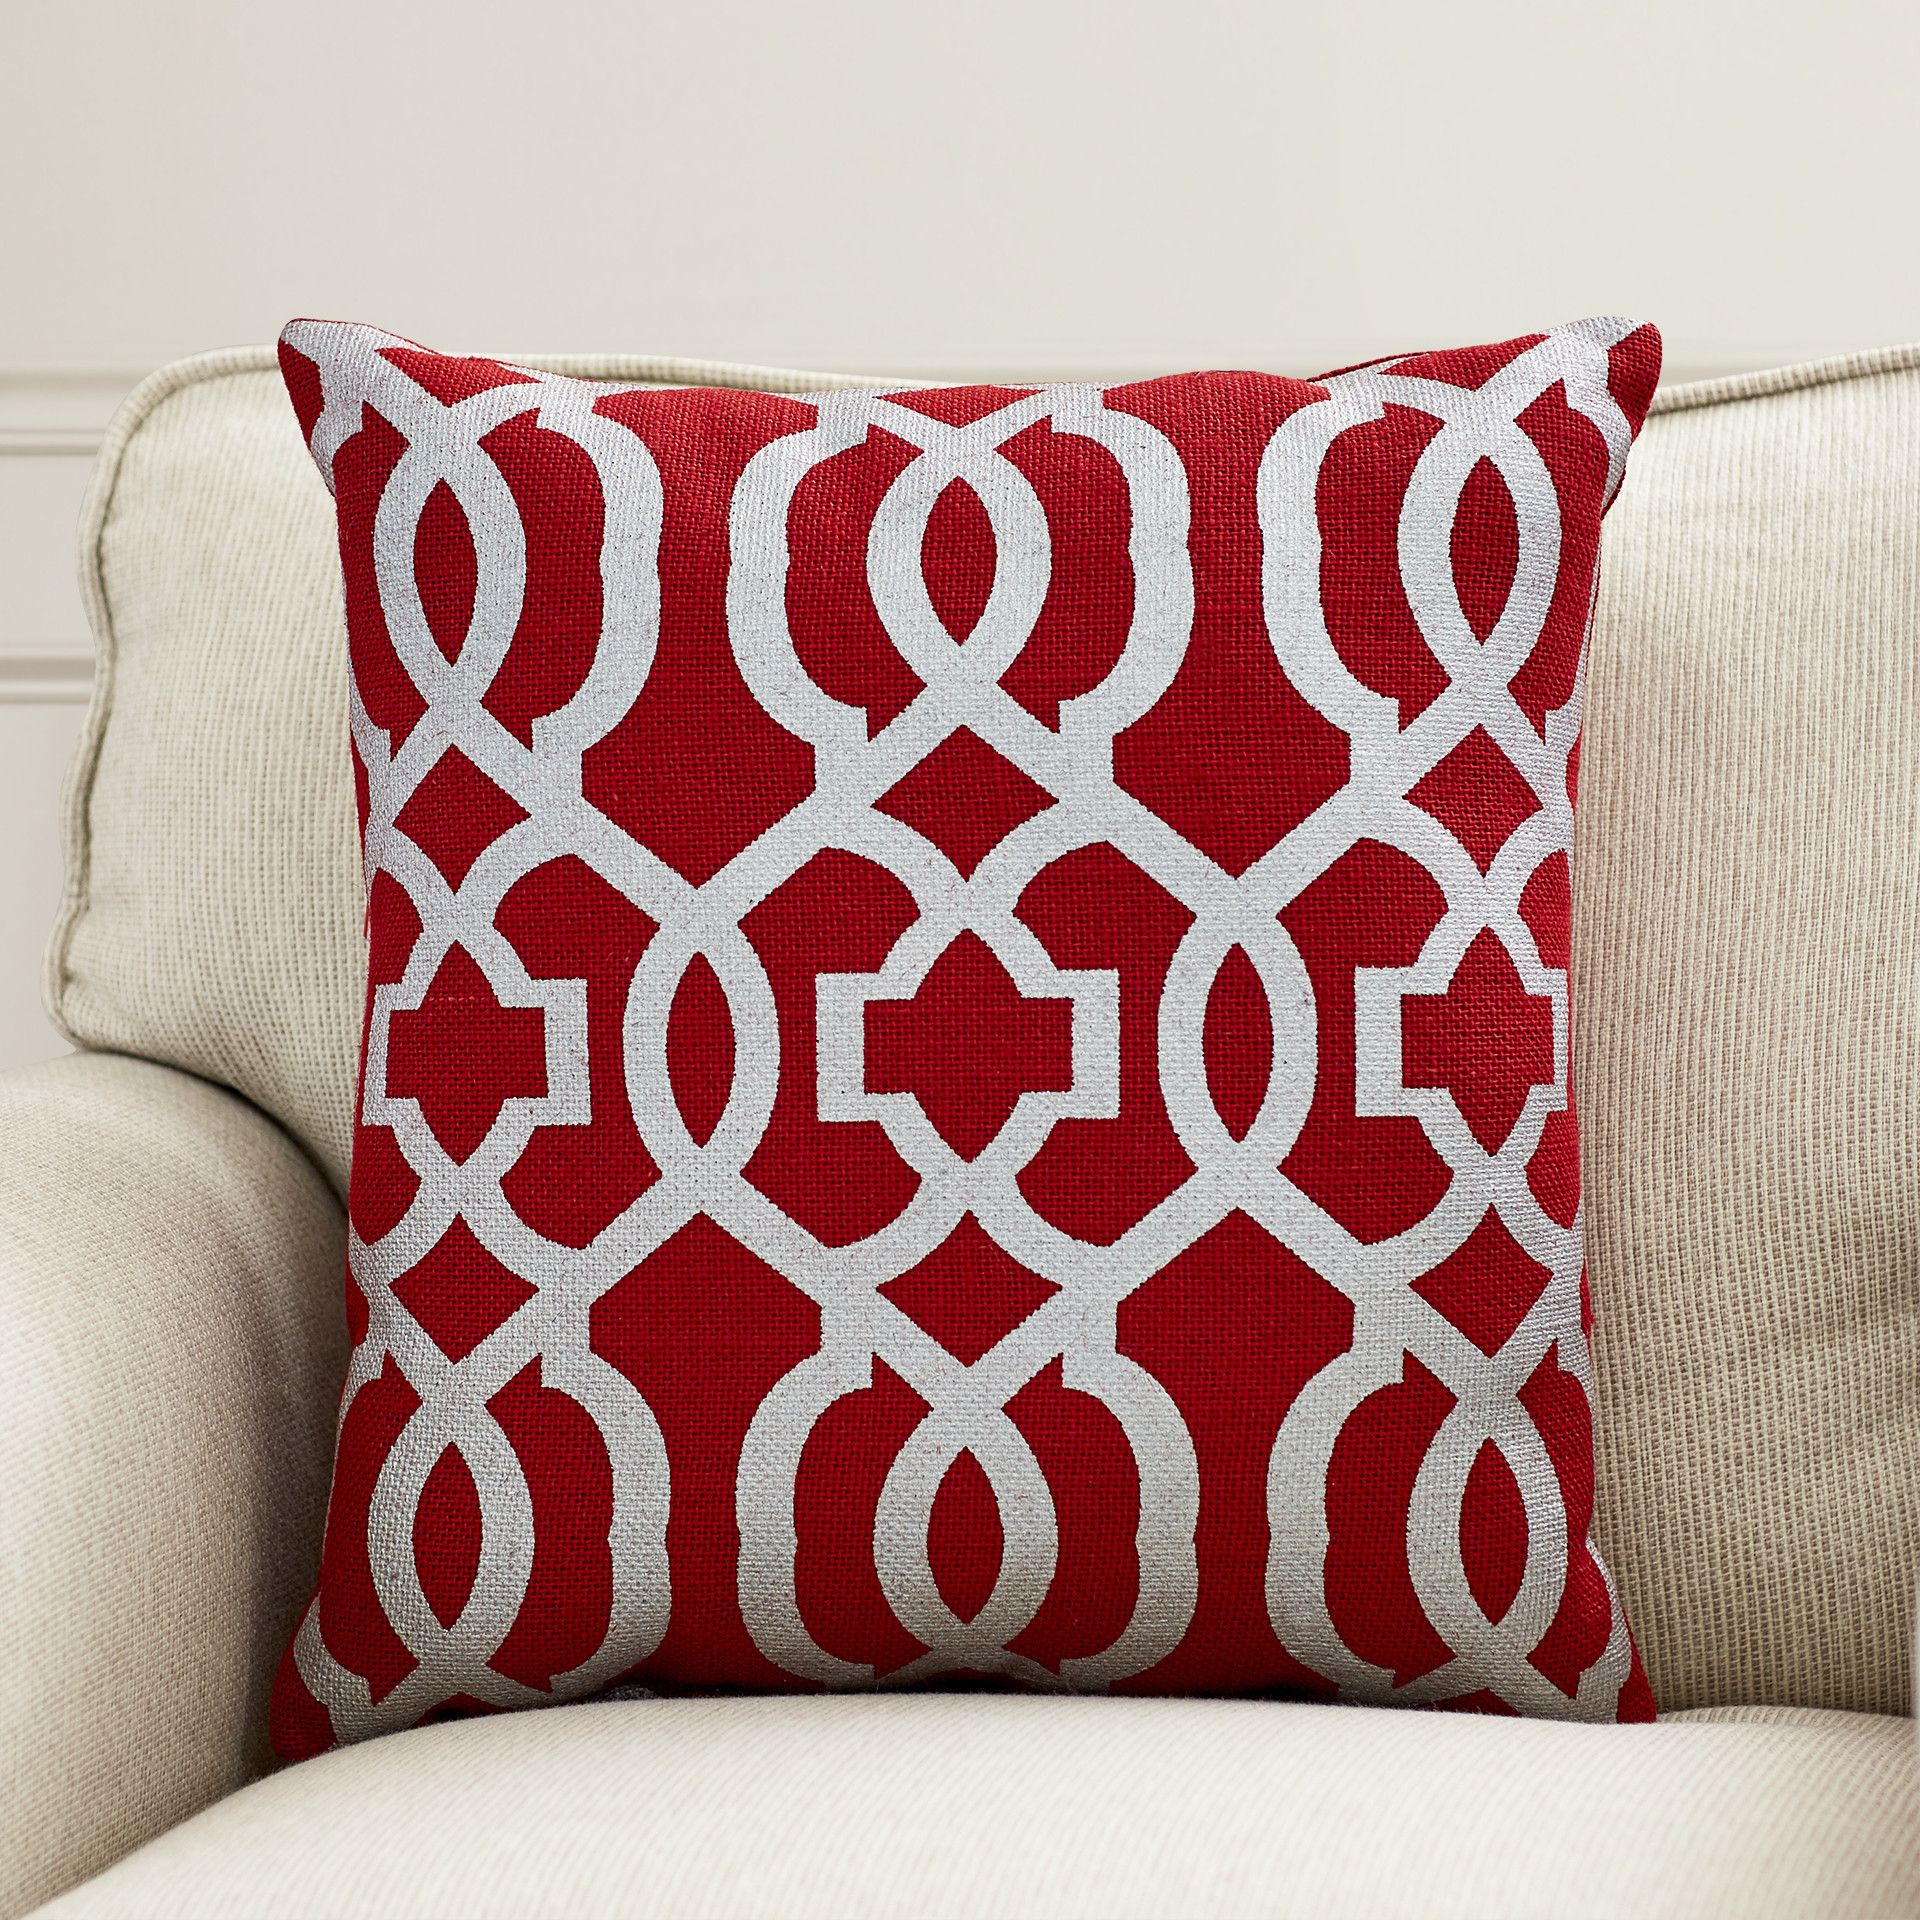 You'll love the Barrault Geometric Jute Throw Pillow at Wayfair - Great Deals on all Décor products with Free Shipping on most stuff, even the big stuff.